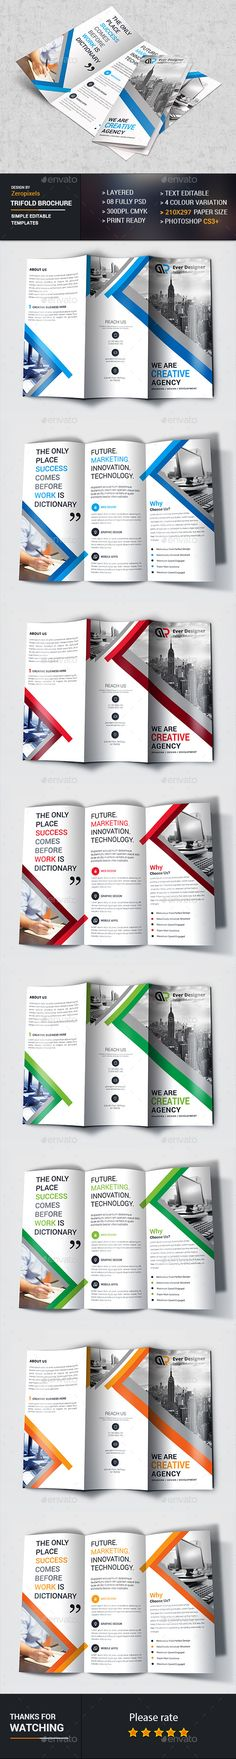 Trifold Brochure Template PSD. Download here: http://graphicriver.net/item/trifold-brochure/16874191?ref=ksioks